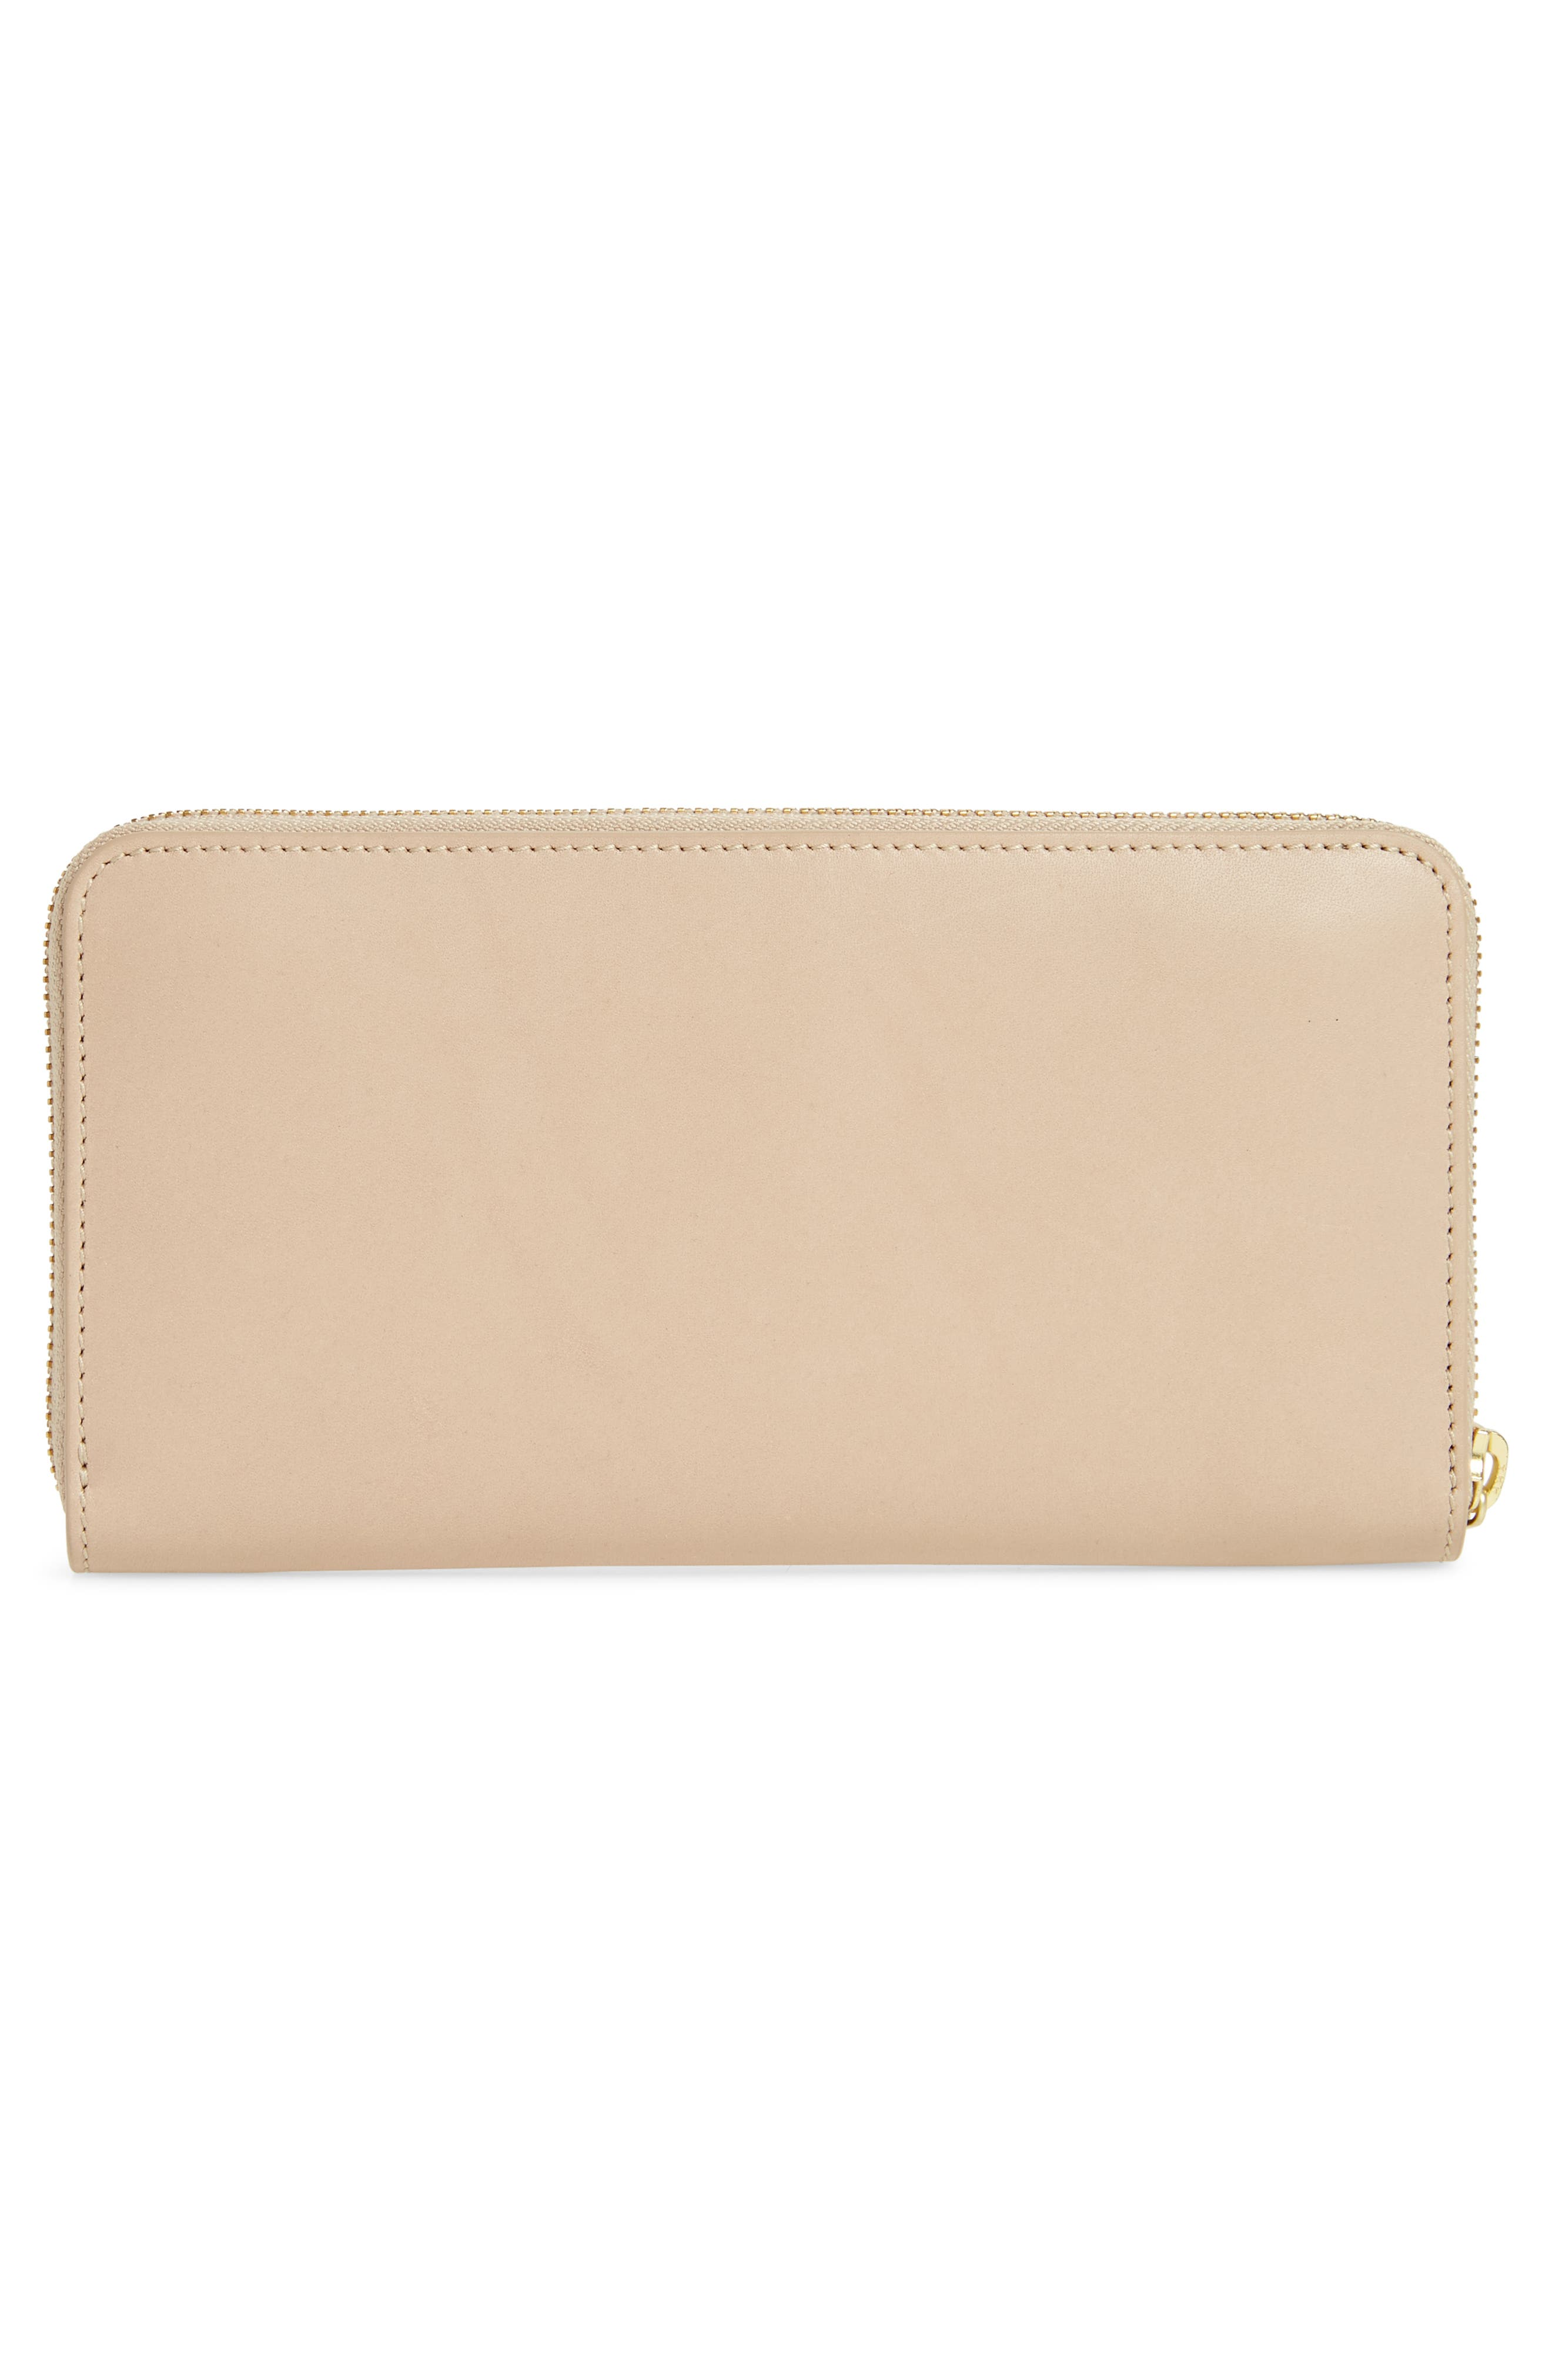 Leather Continental Wallet,                             Alternate thumbnail 3, color,                             251